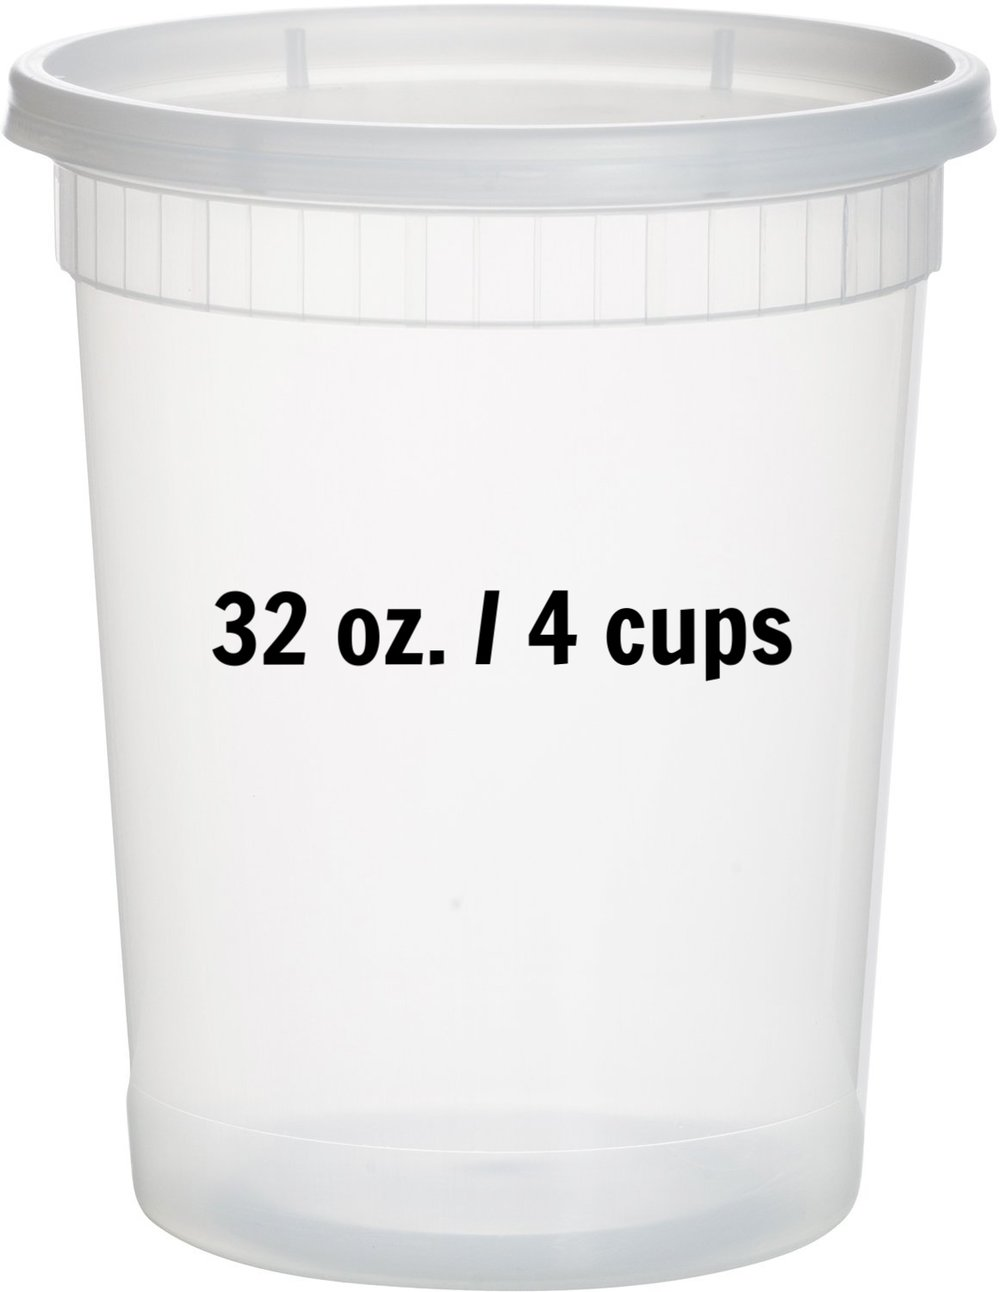 Large Container.jpg